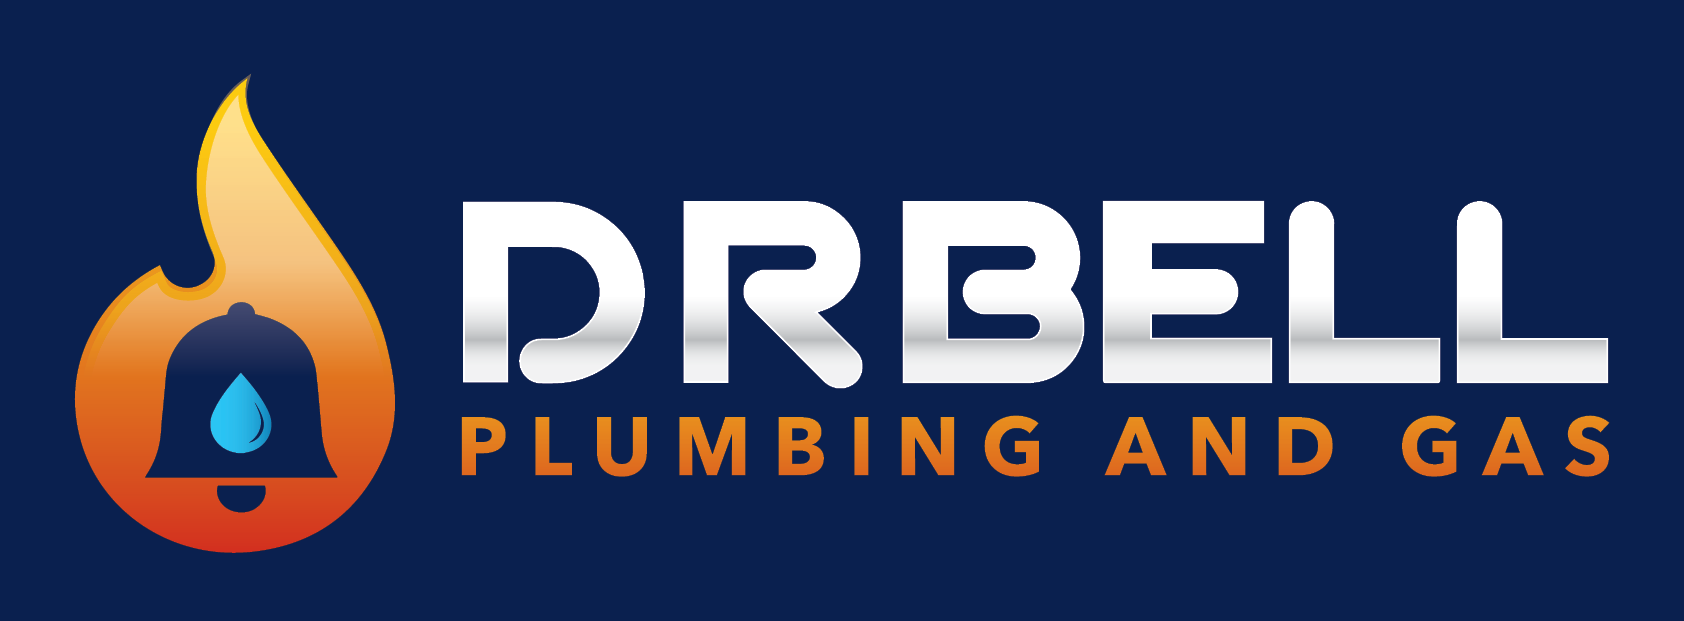 D R Bell Plumbing and Gas Verified Logo